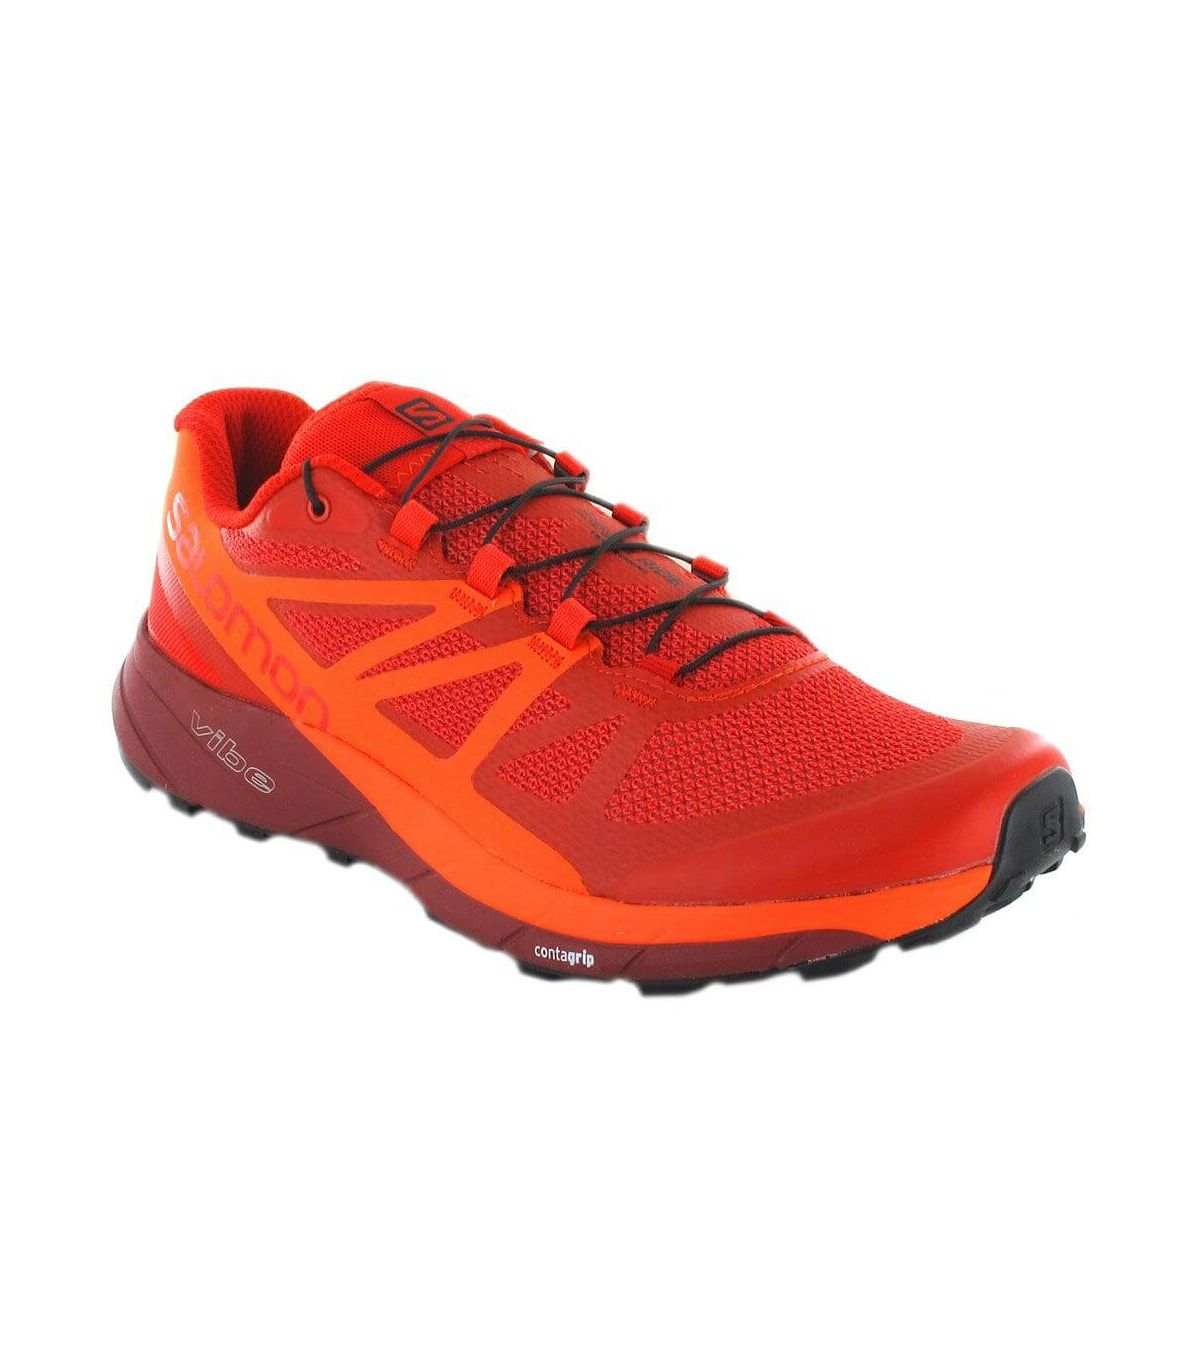 Salomon Sense Ride Naranja Salomon Zapatillas Trail Running Hombre Zapatillas Trail Running